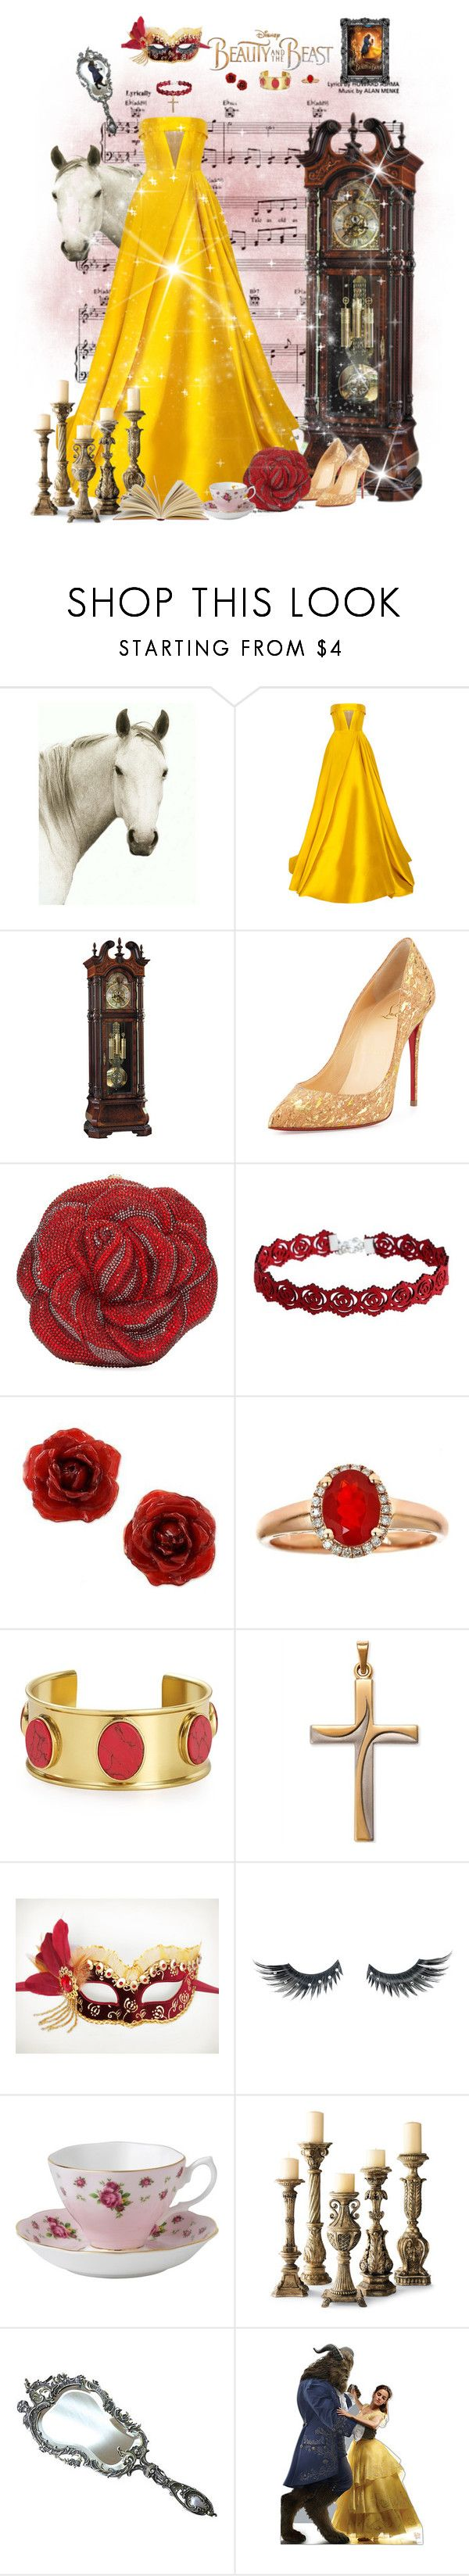 """""""Belle ❤️"""" by tarakaypoly ❤ liked on Polyvore featuring Disney, Natural Curiosities, Alex Perry, Howard Miller, Christian Louboutin, Judith Leiber, NOVICA, Anika and August, Kate Spade and Masquerade"""